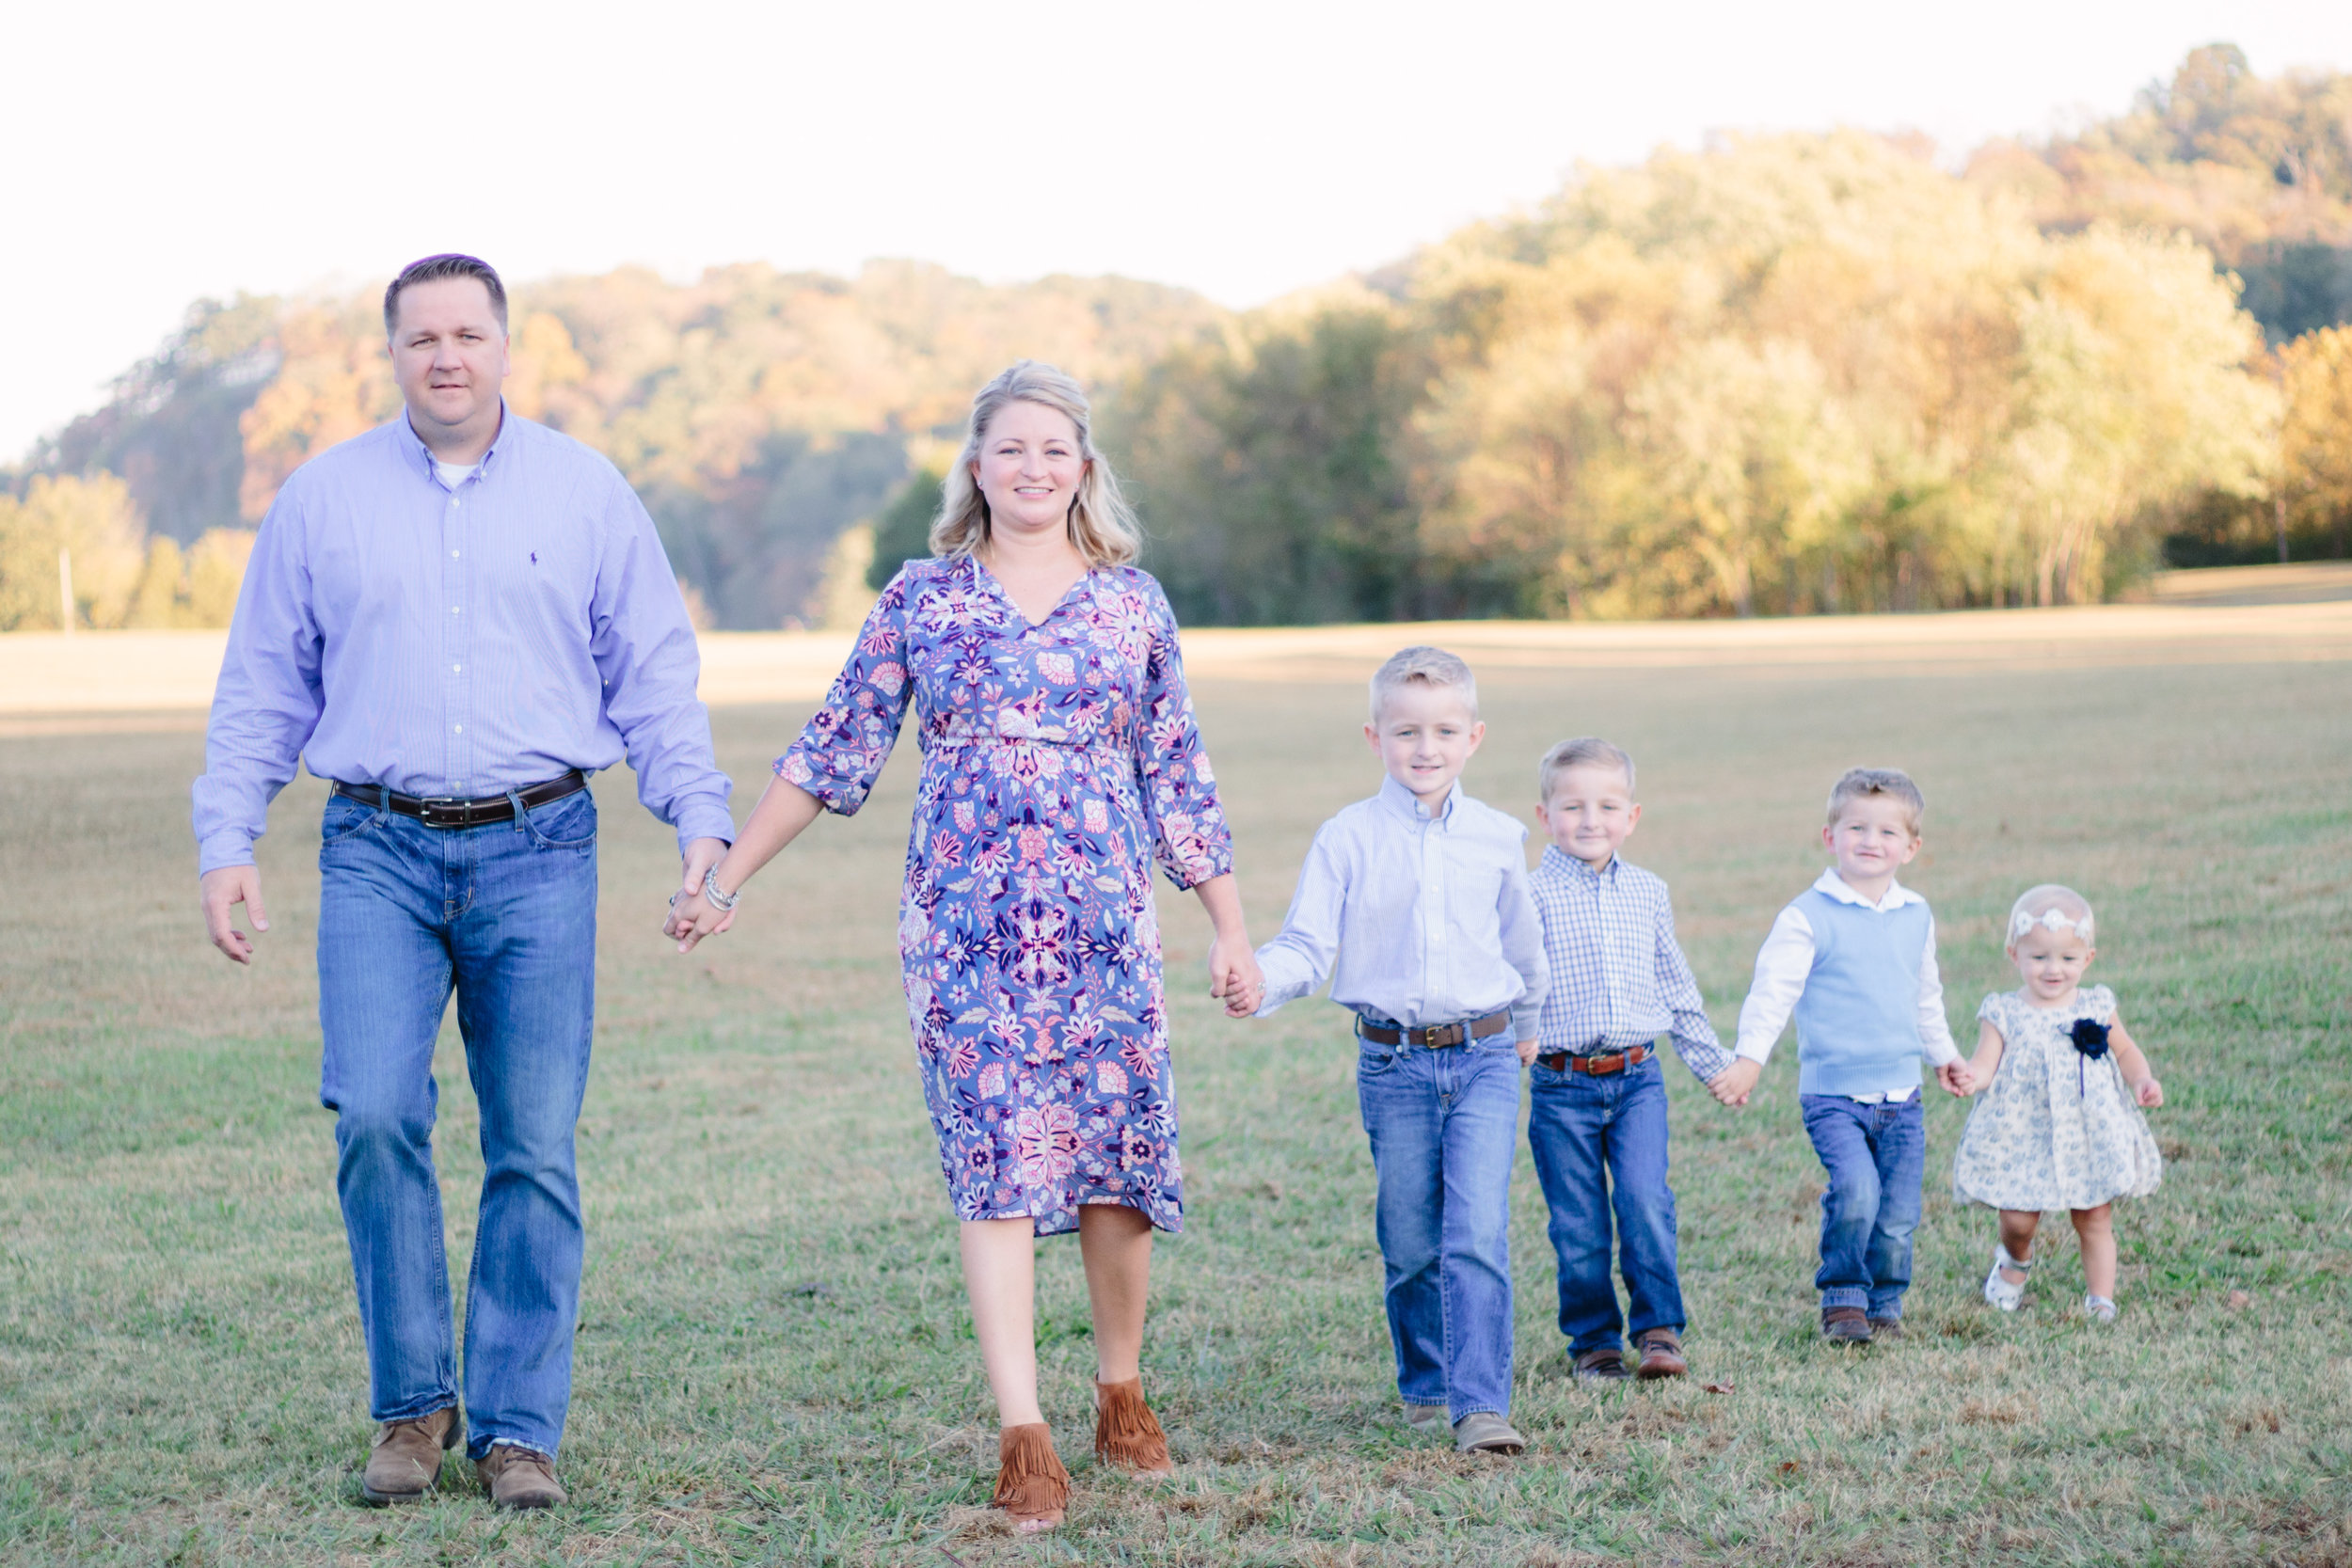 family, poses, outdoor, Knoxville, ideas, outfits, large, country, field, inspiration, funny, with toddler, color scheme, creative, siblings, fall, unique, natural, natural light, photoshoot, colorful, vibrant, fall, mountains